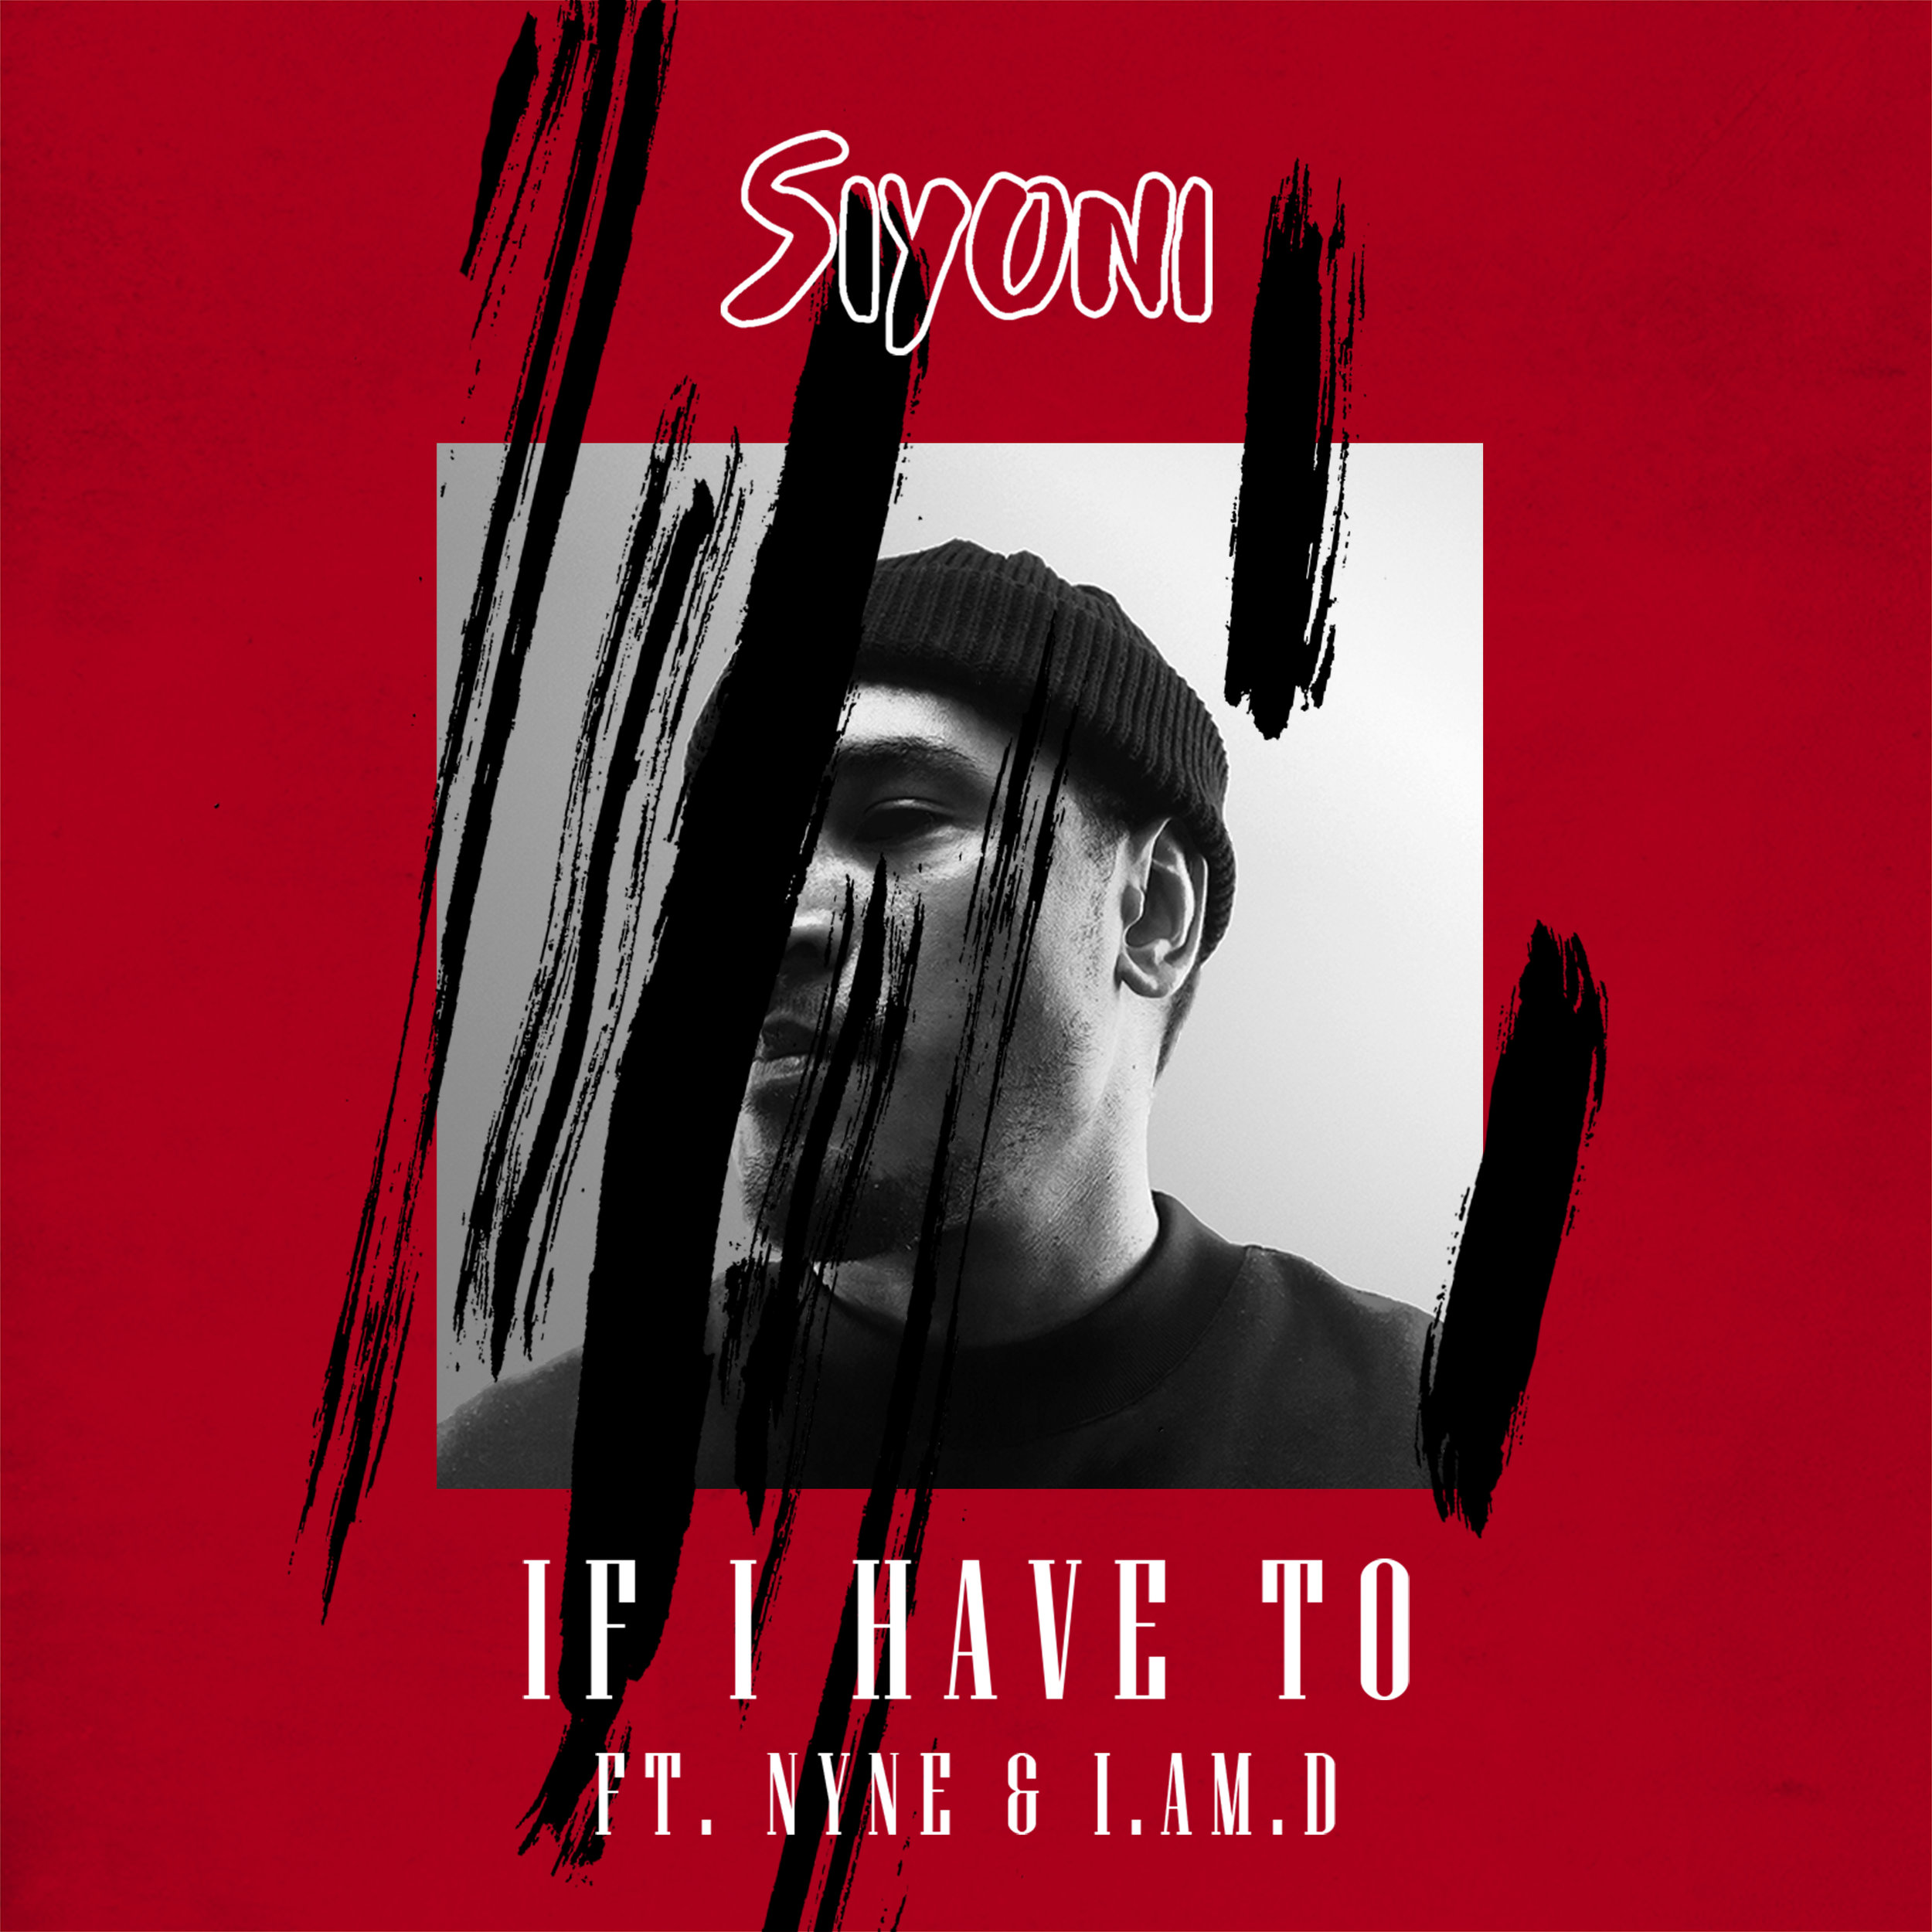 WVS027 - Siyoni - If I Have To feat. Nyne & I Am D - Artwork.jpg